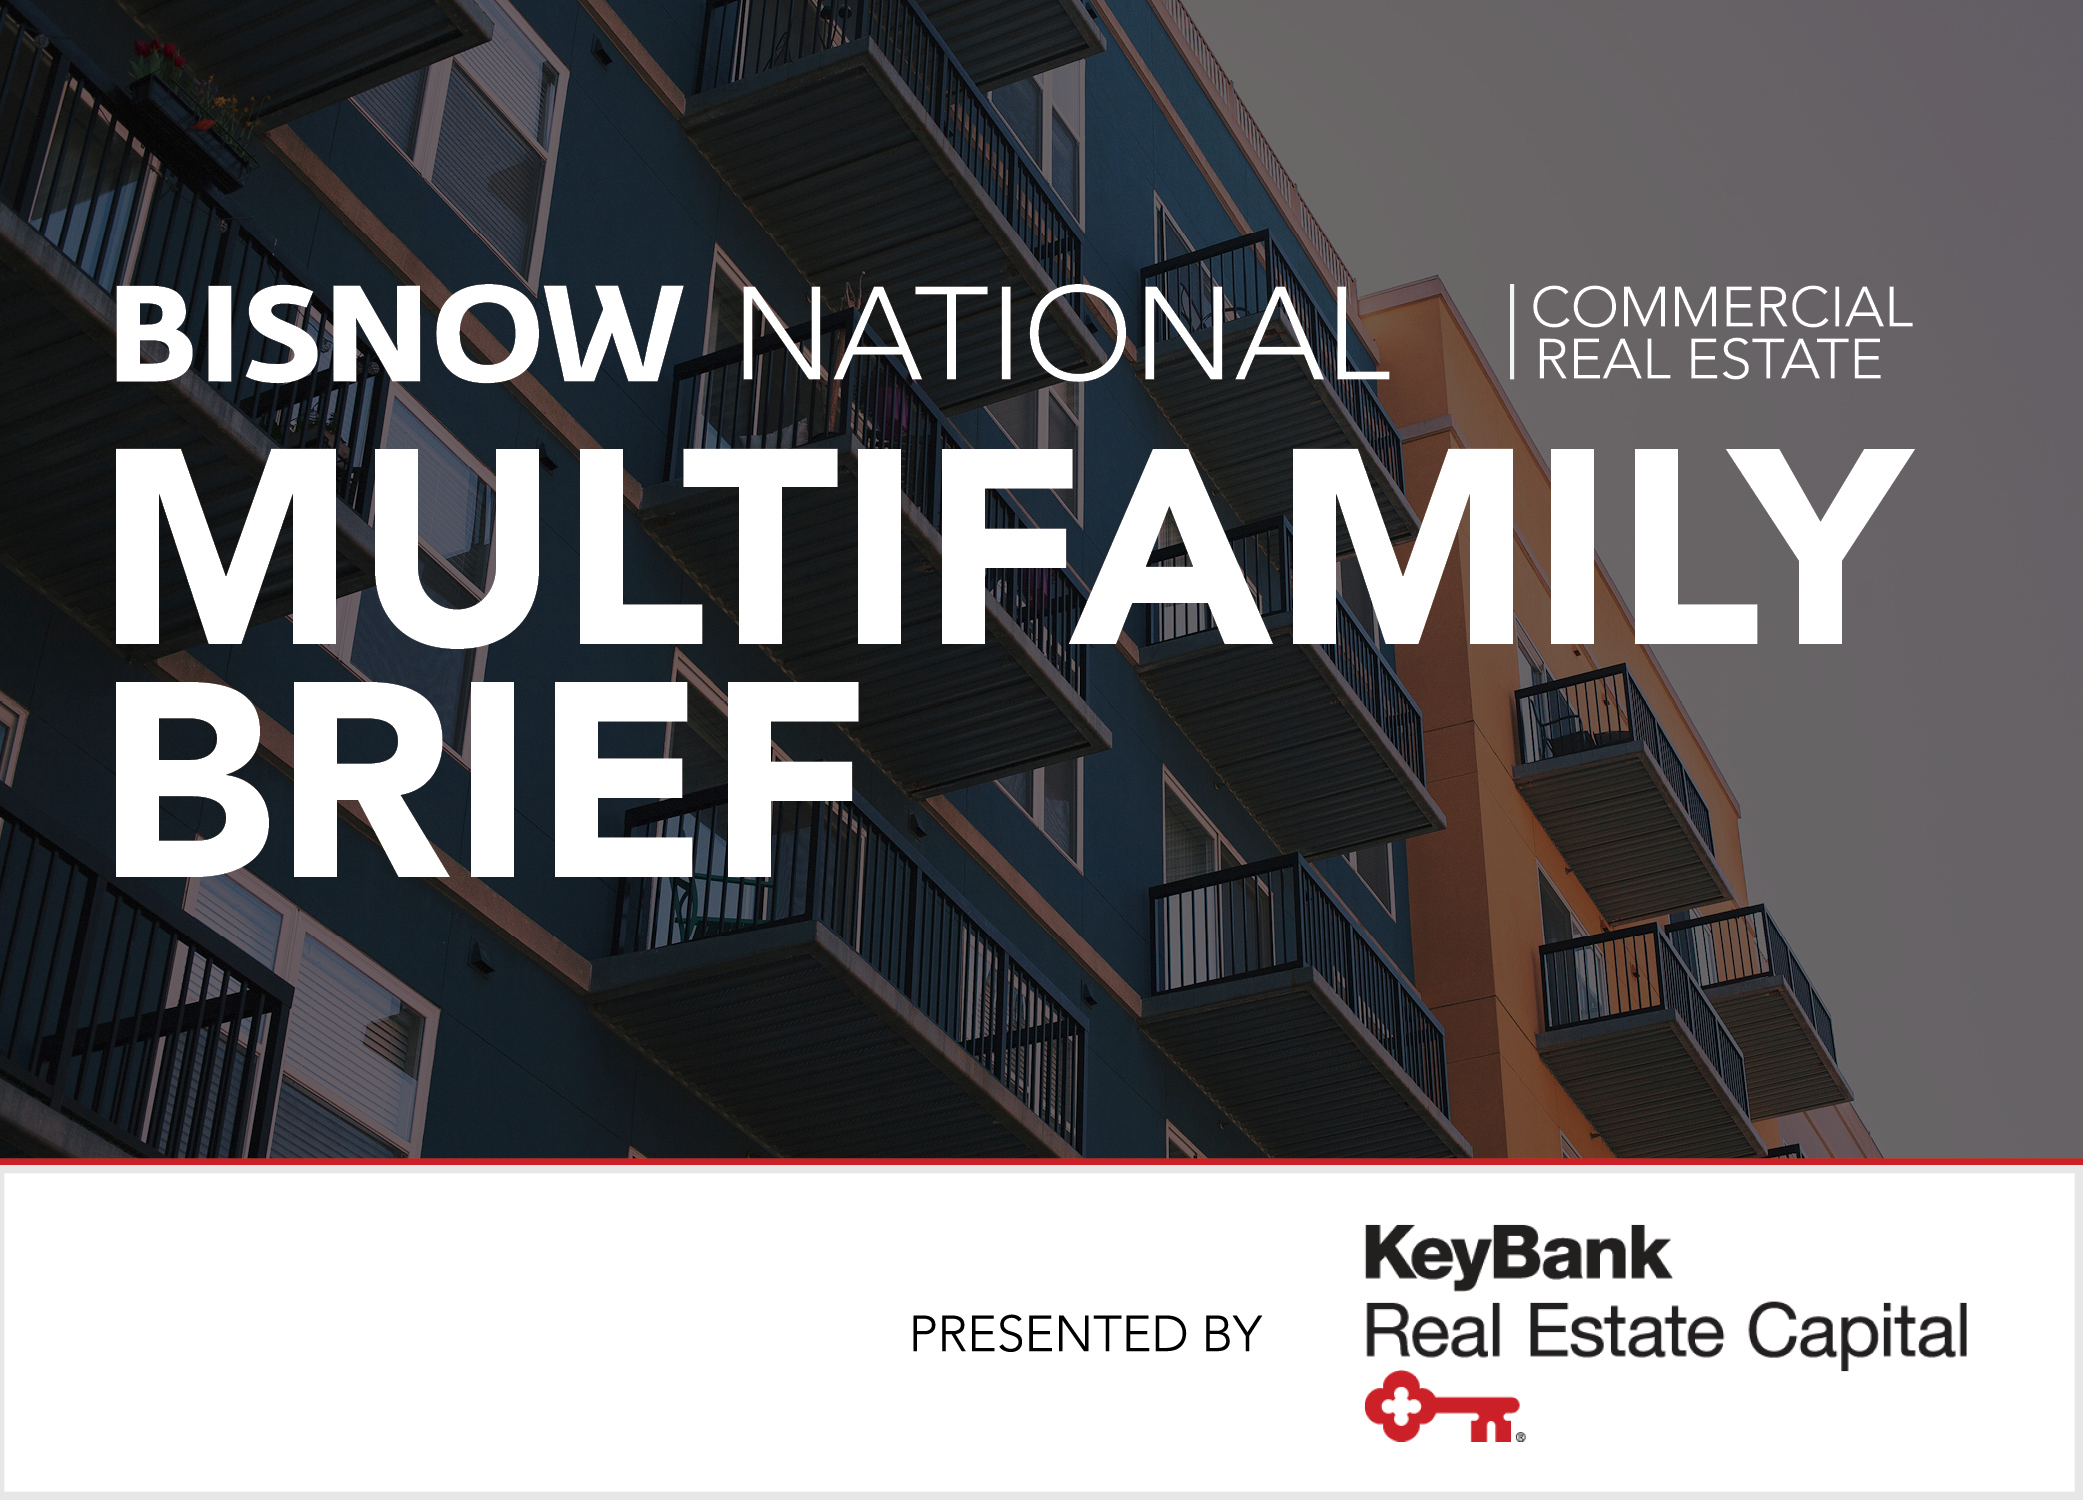 Bisnow Morning Brief Multifamily